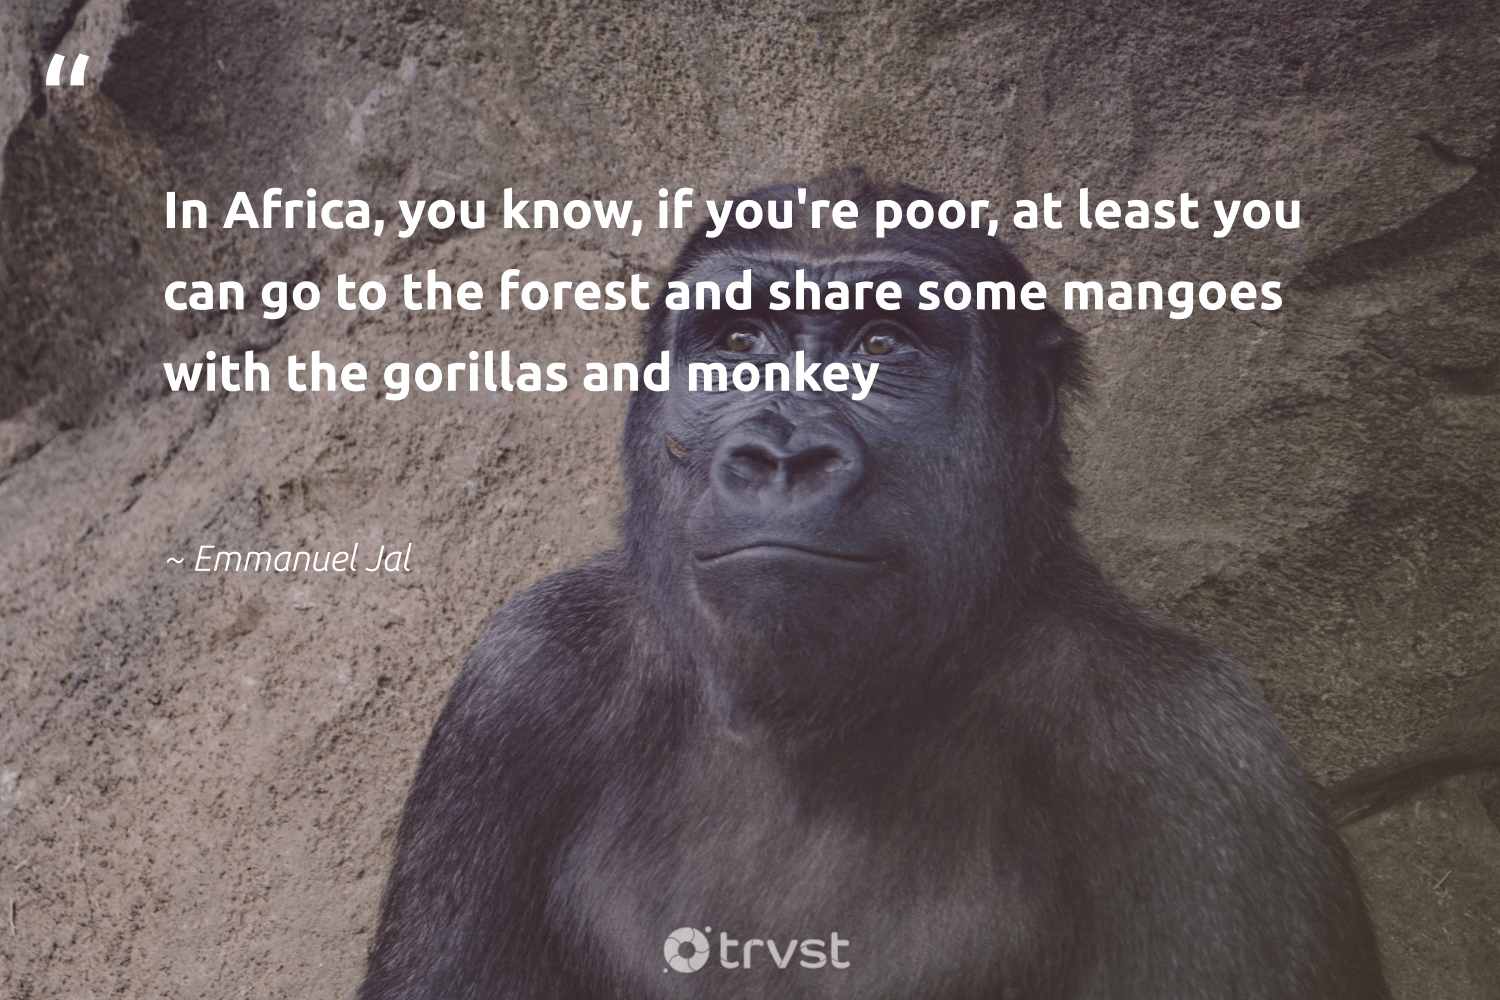 """In Africa, you know, if you're poor, at least you can go to the forest and share some mangoes with the gorillas and monkey""  - Emmanuel Jal #trvst #quotes #africa #forest #poor #monkey #deforestation #wildlifeprotection #gogreen #bethechange #treeplanting #splendidanimals"